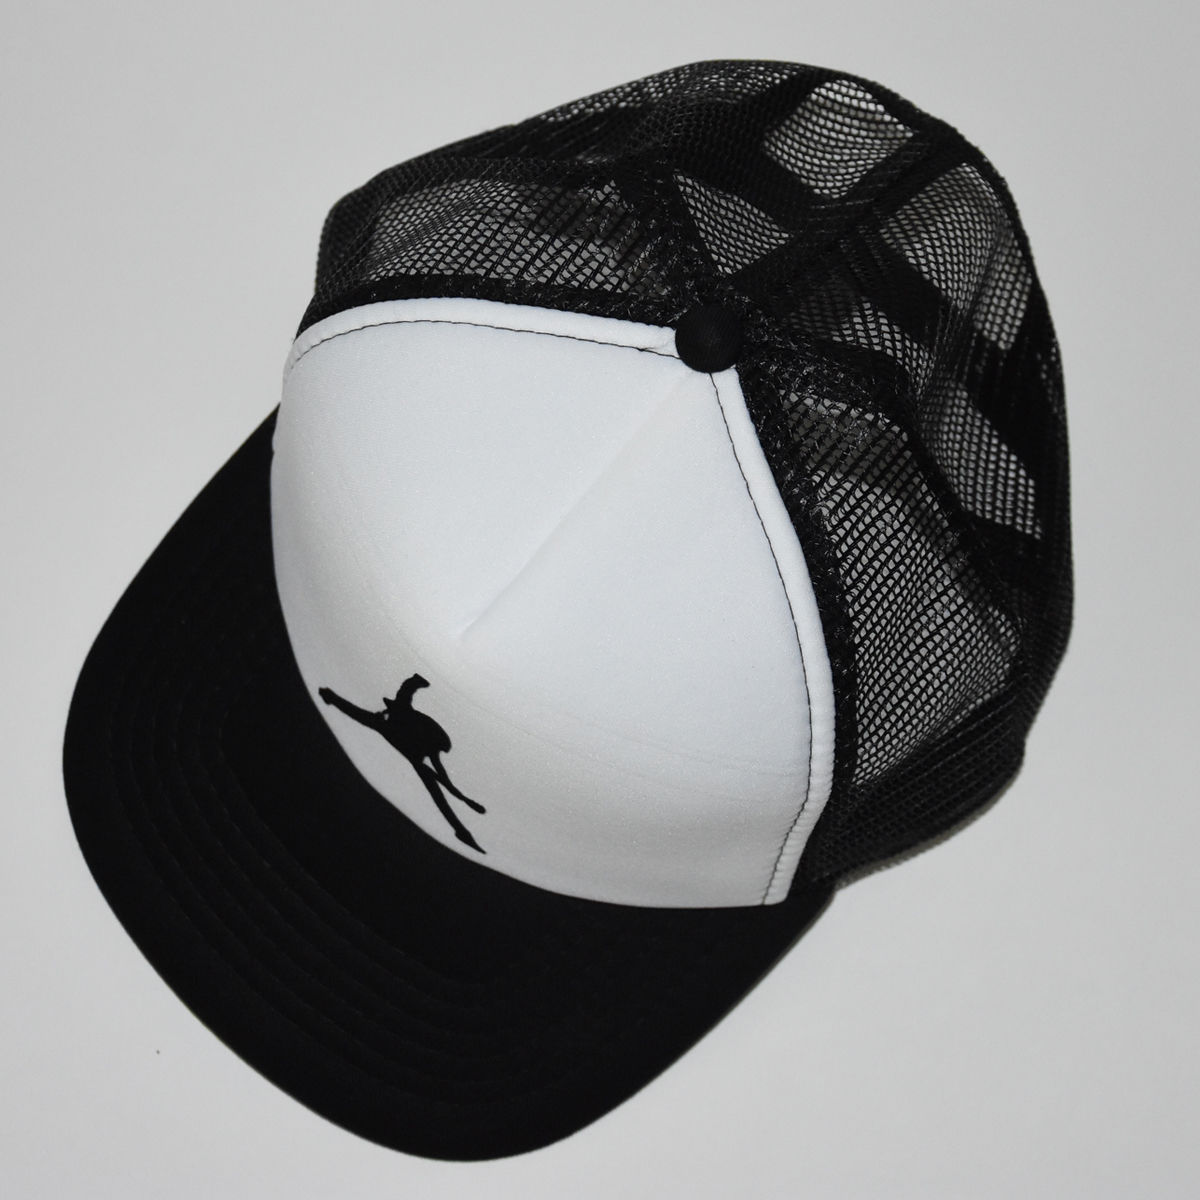 BD Logo Trucker Cap - White/Black - product images  of